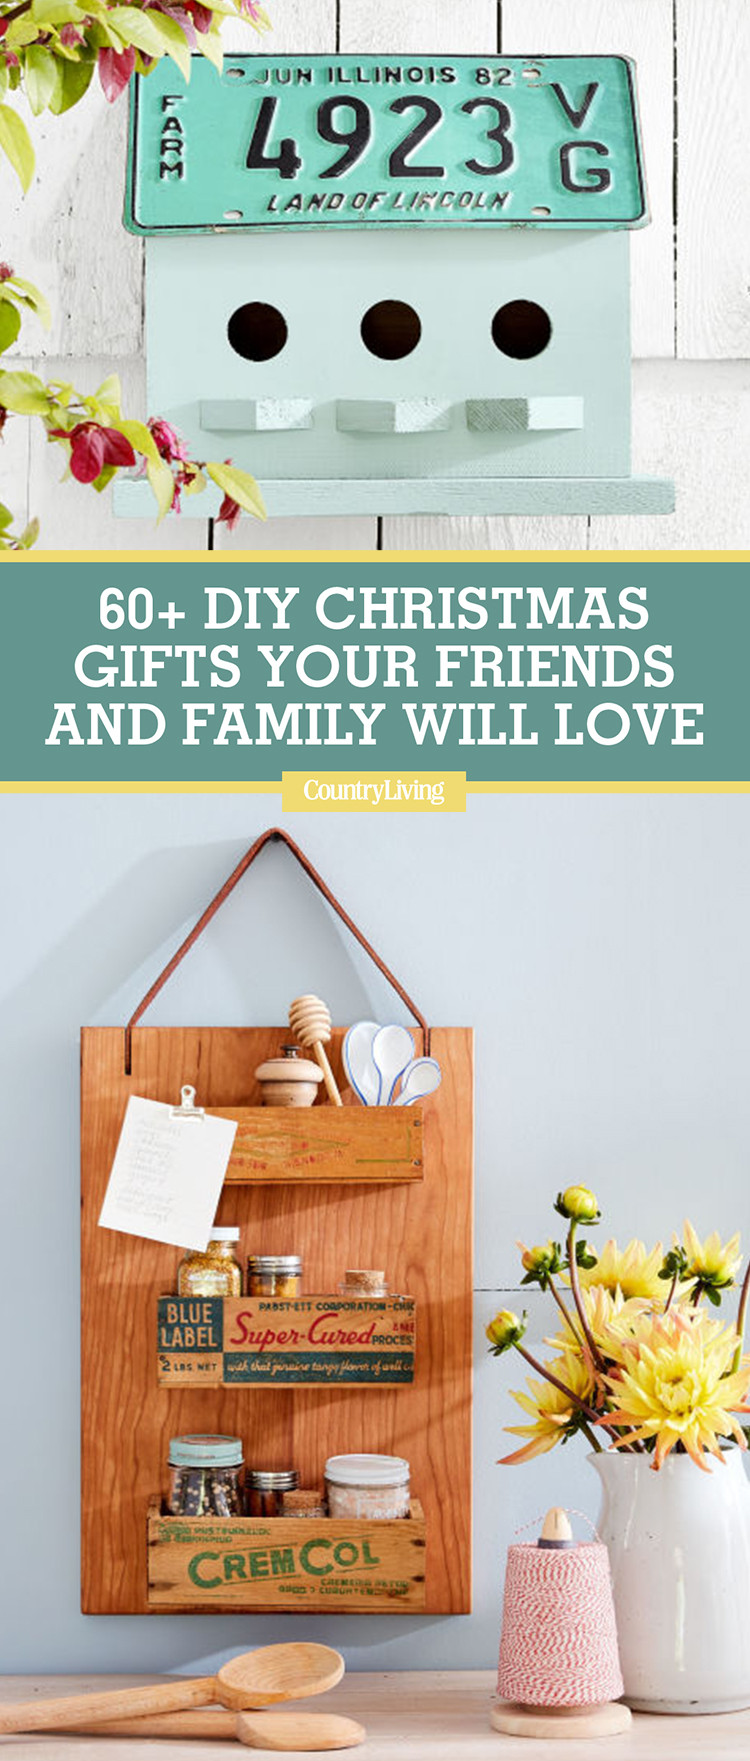 Best ideas about DIY Gift For Christmas . Save or Pin 60 DIY Homemade Christmas Gifts Craft Ideas for Now.